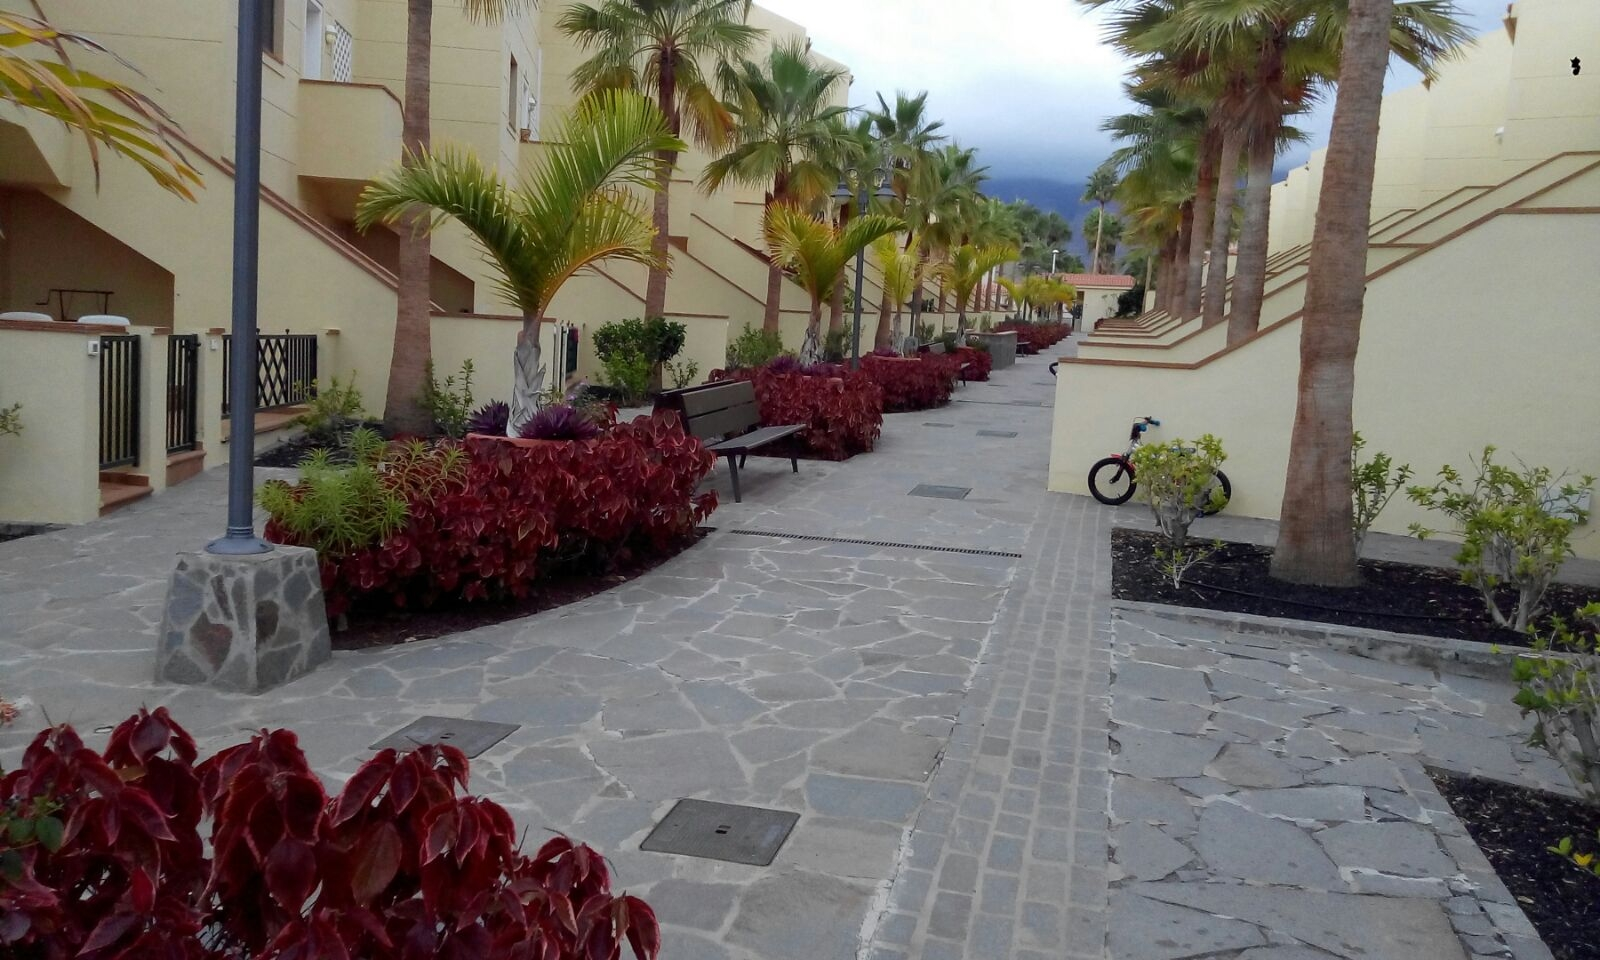 Properties for Sale in Tenerife, Canary Islands, Spain | SylkWayStar Real Estate. 1 Bedroom apartment Bellamar, El Duque. Image-24029